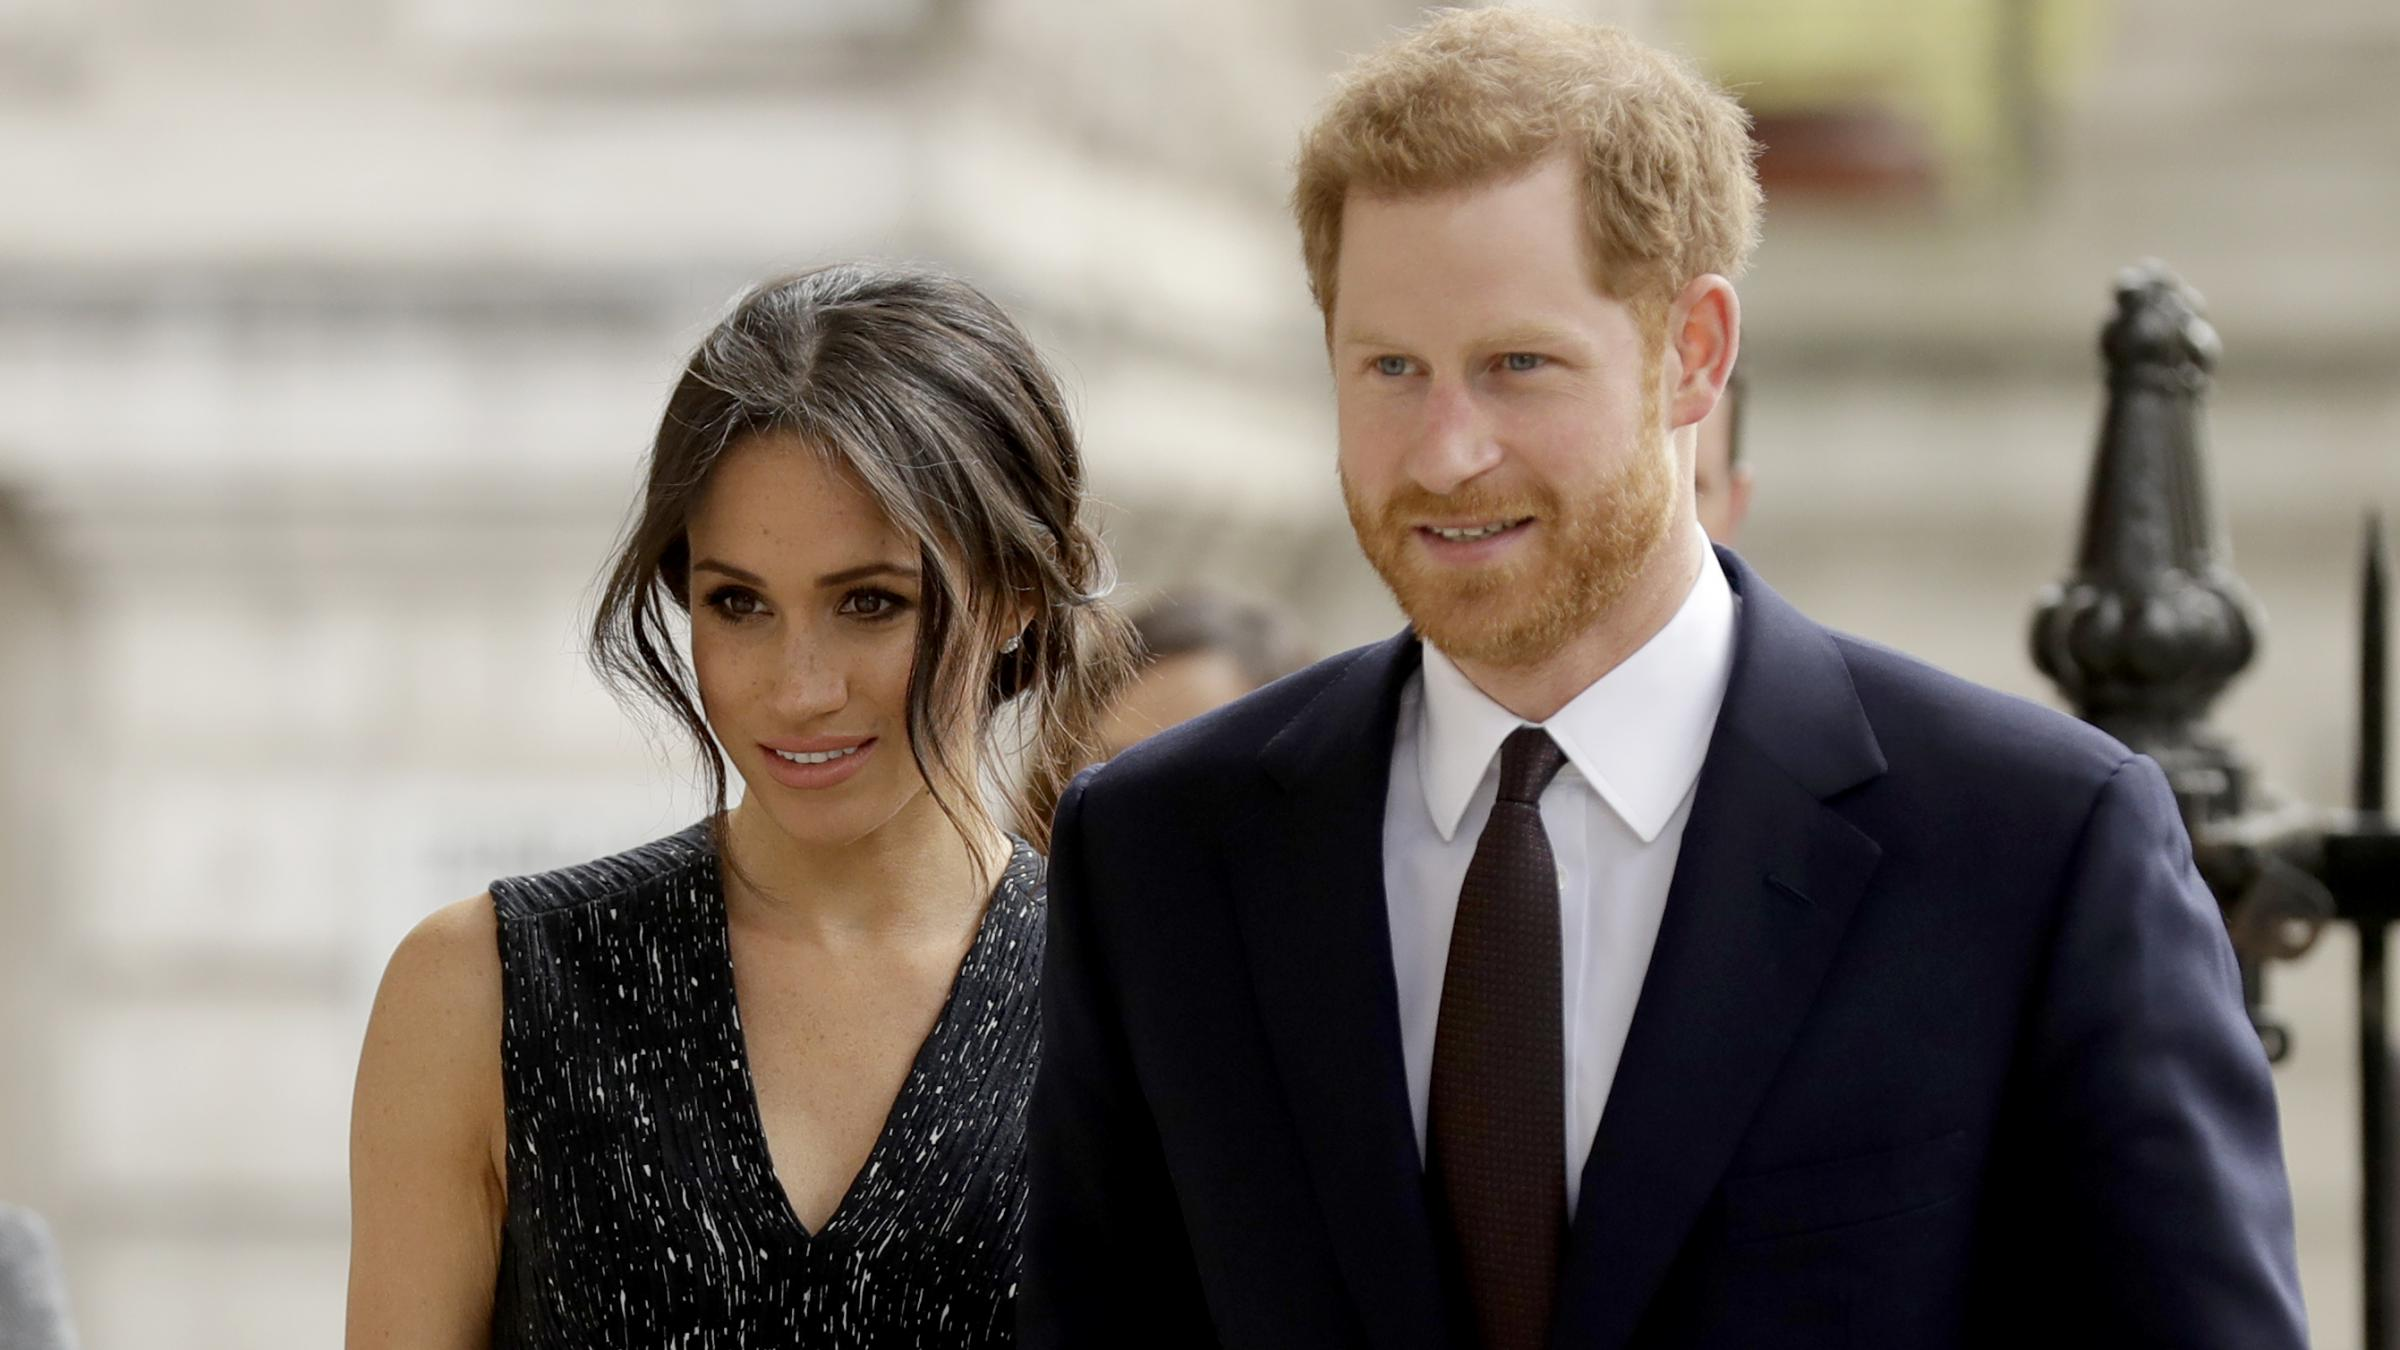 Royal Wedding Watch.How To Watch The Royal Wedding In The Way That S Right For You